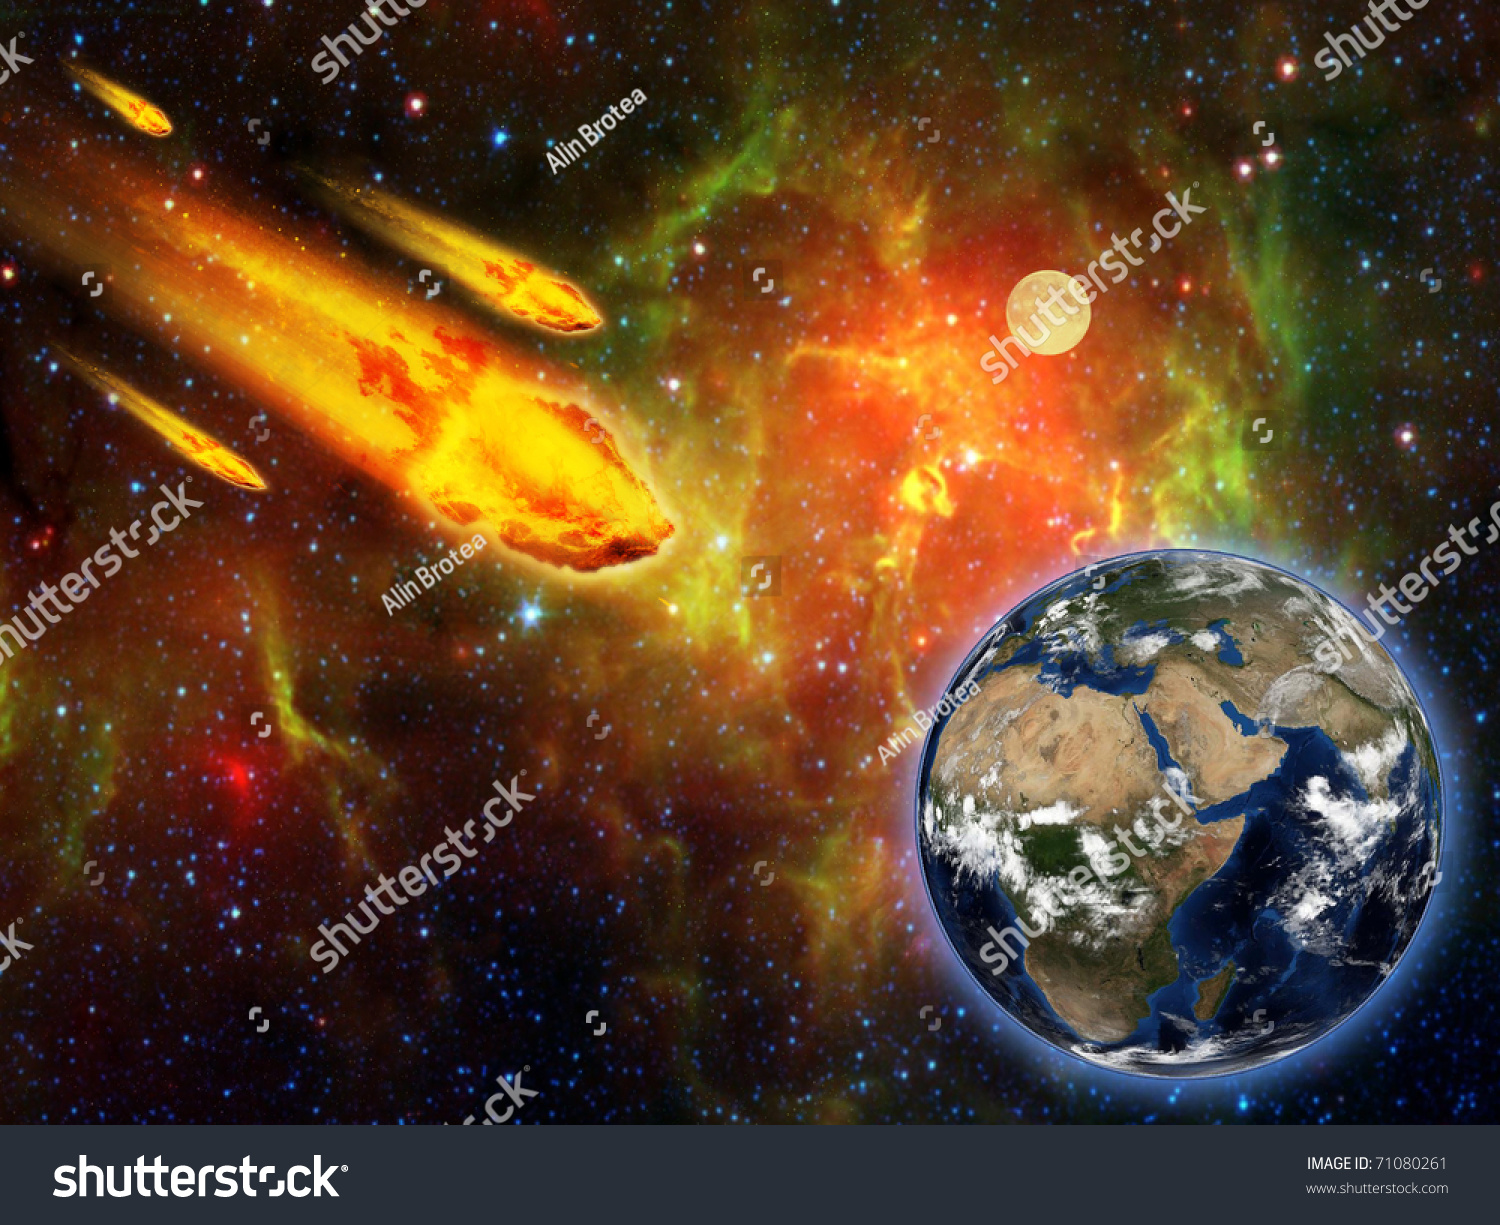 flaming asteroid hitting the earth - photo #3